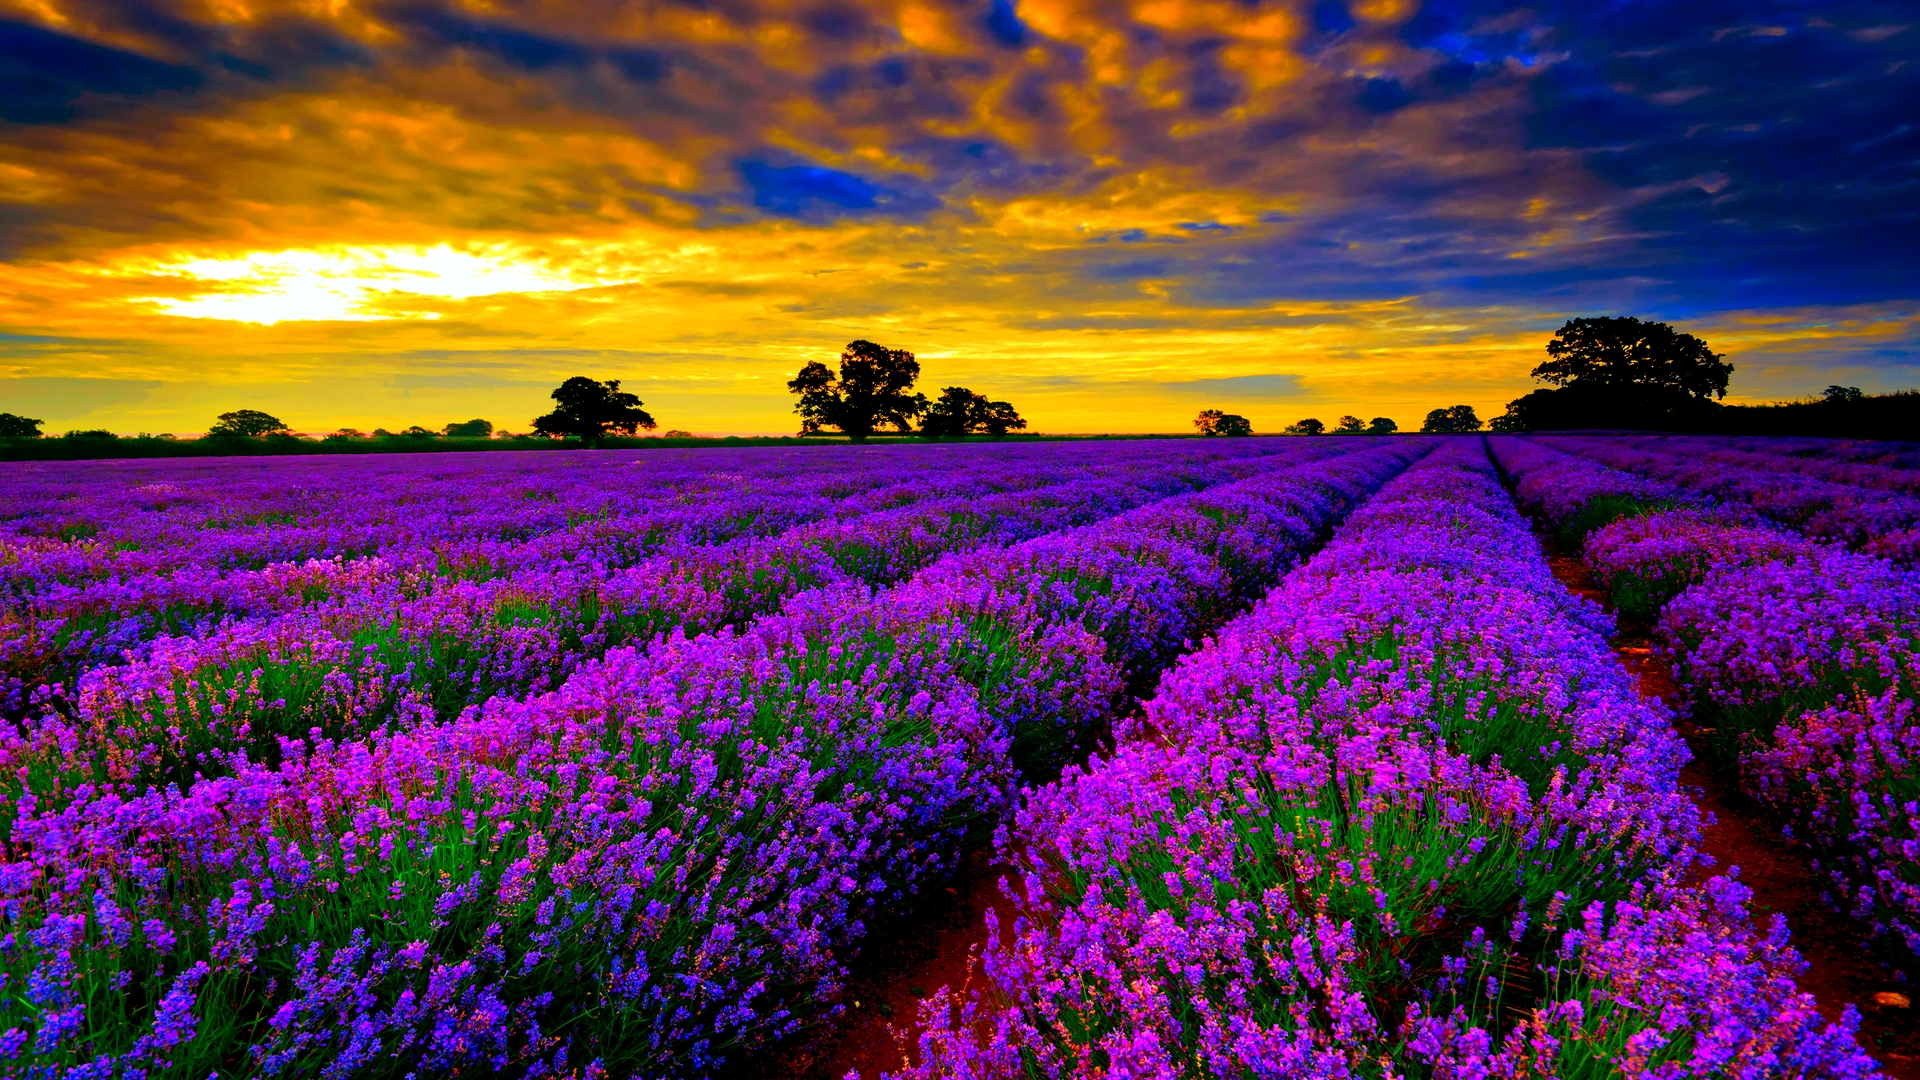 Colorful wallpapers pictures images - Colorful background hd ...